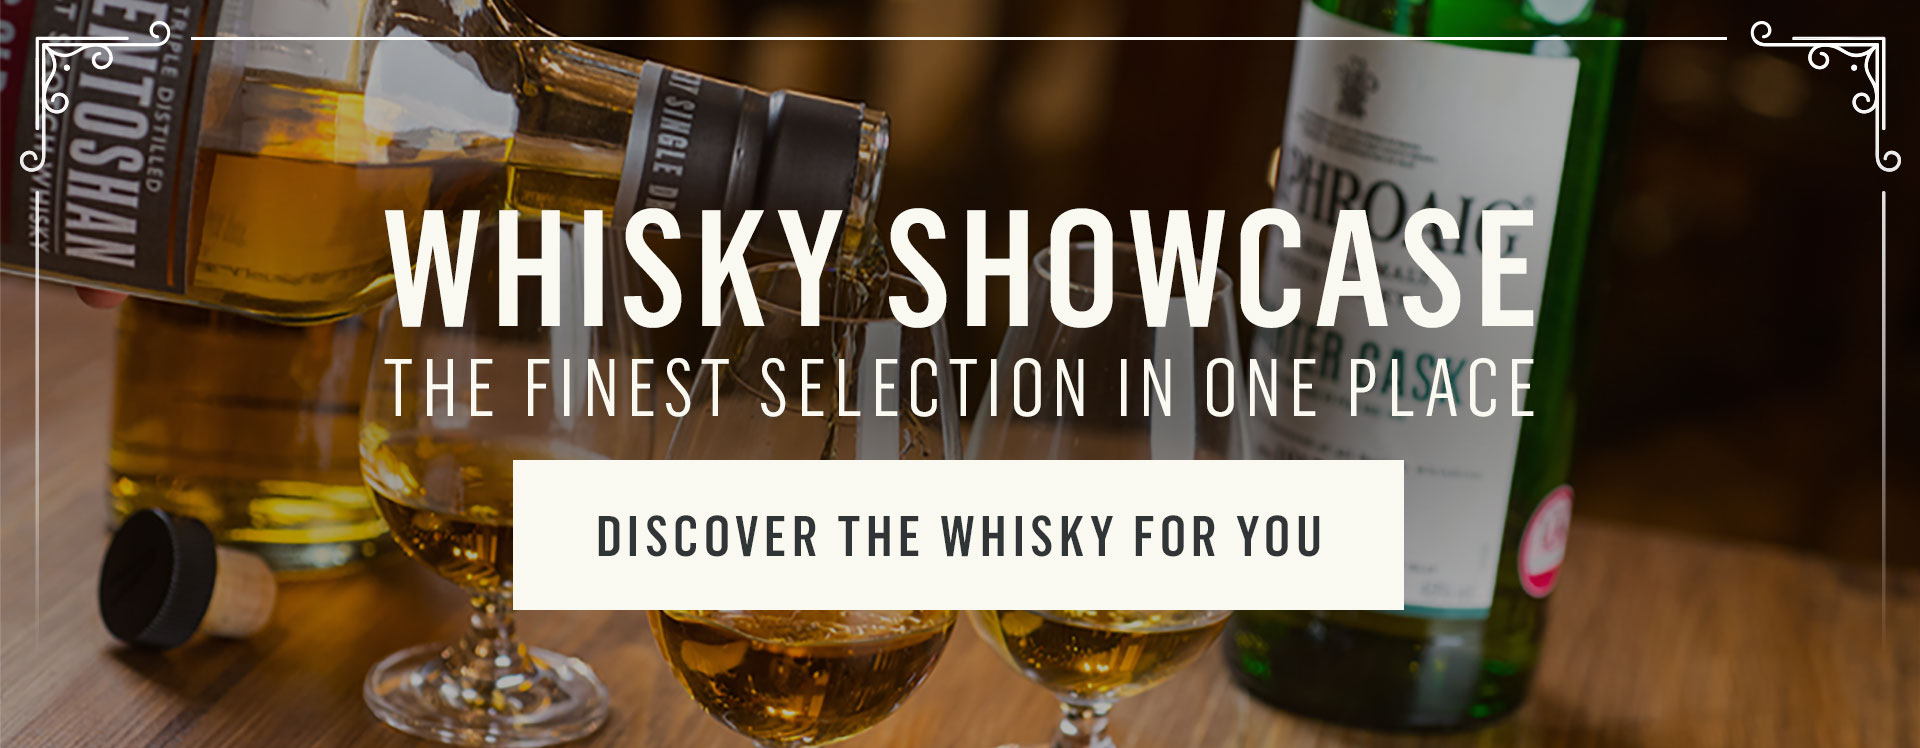 Whisky Showcase at The Clarence in London